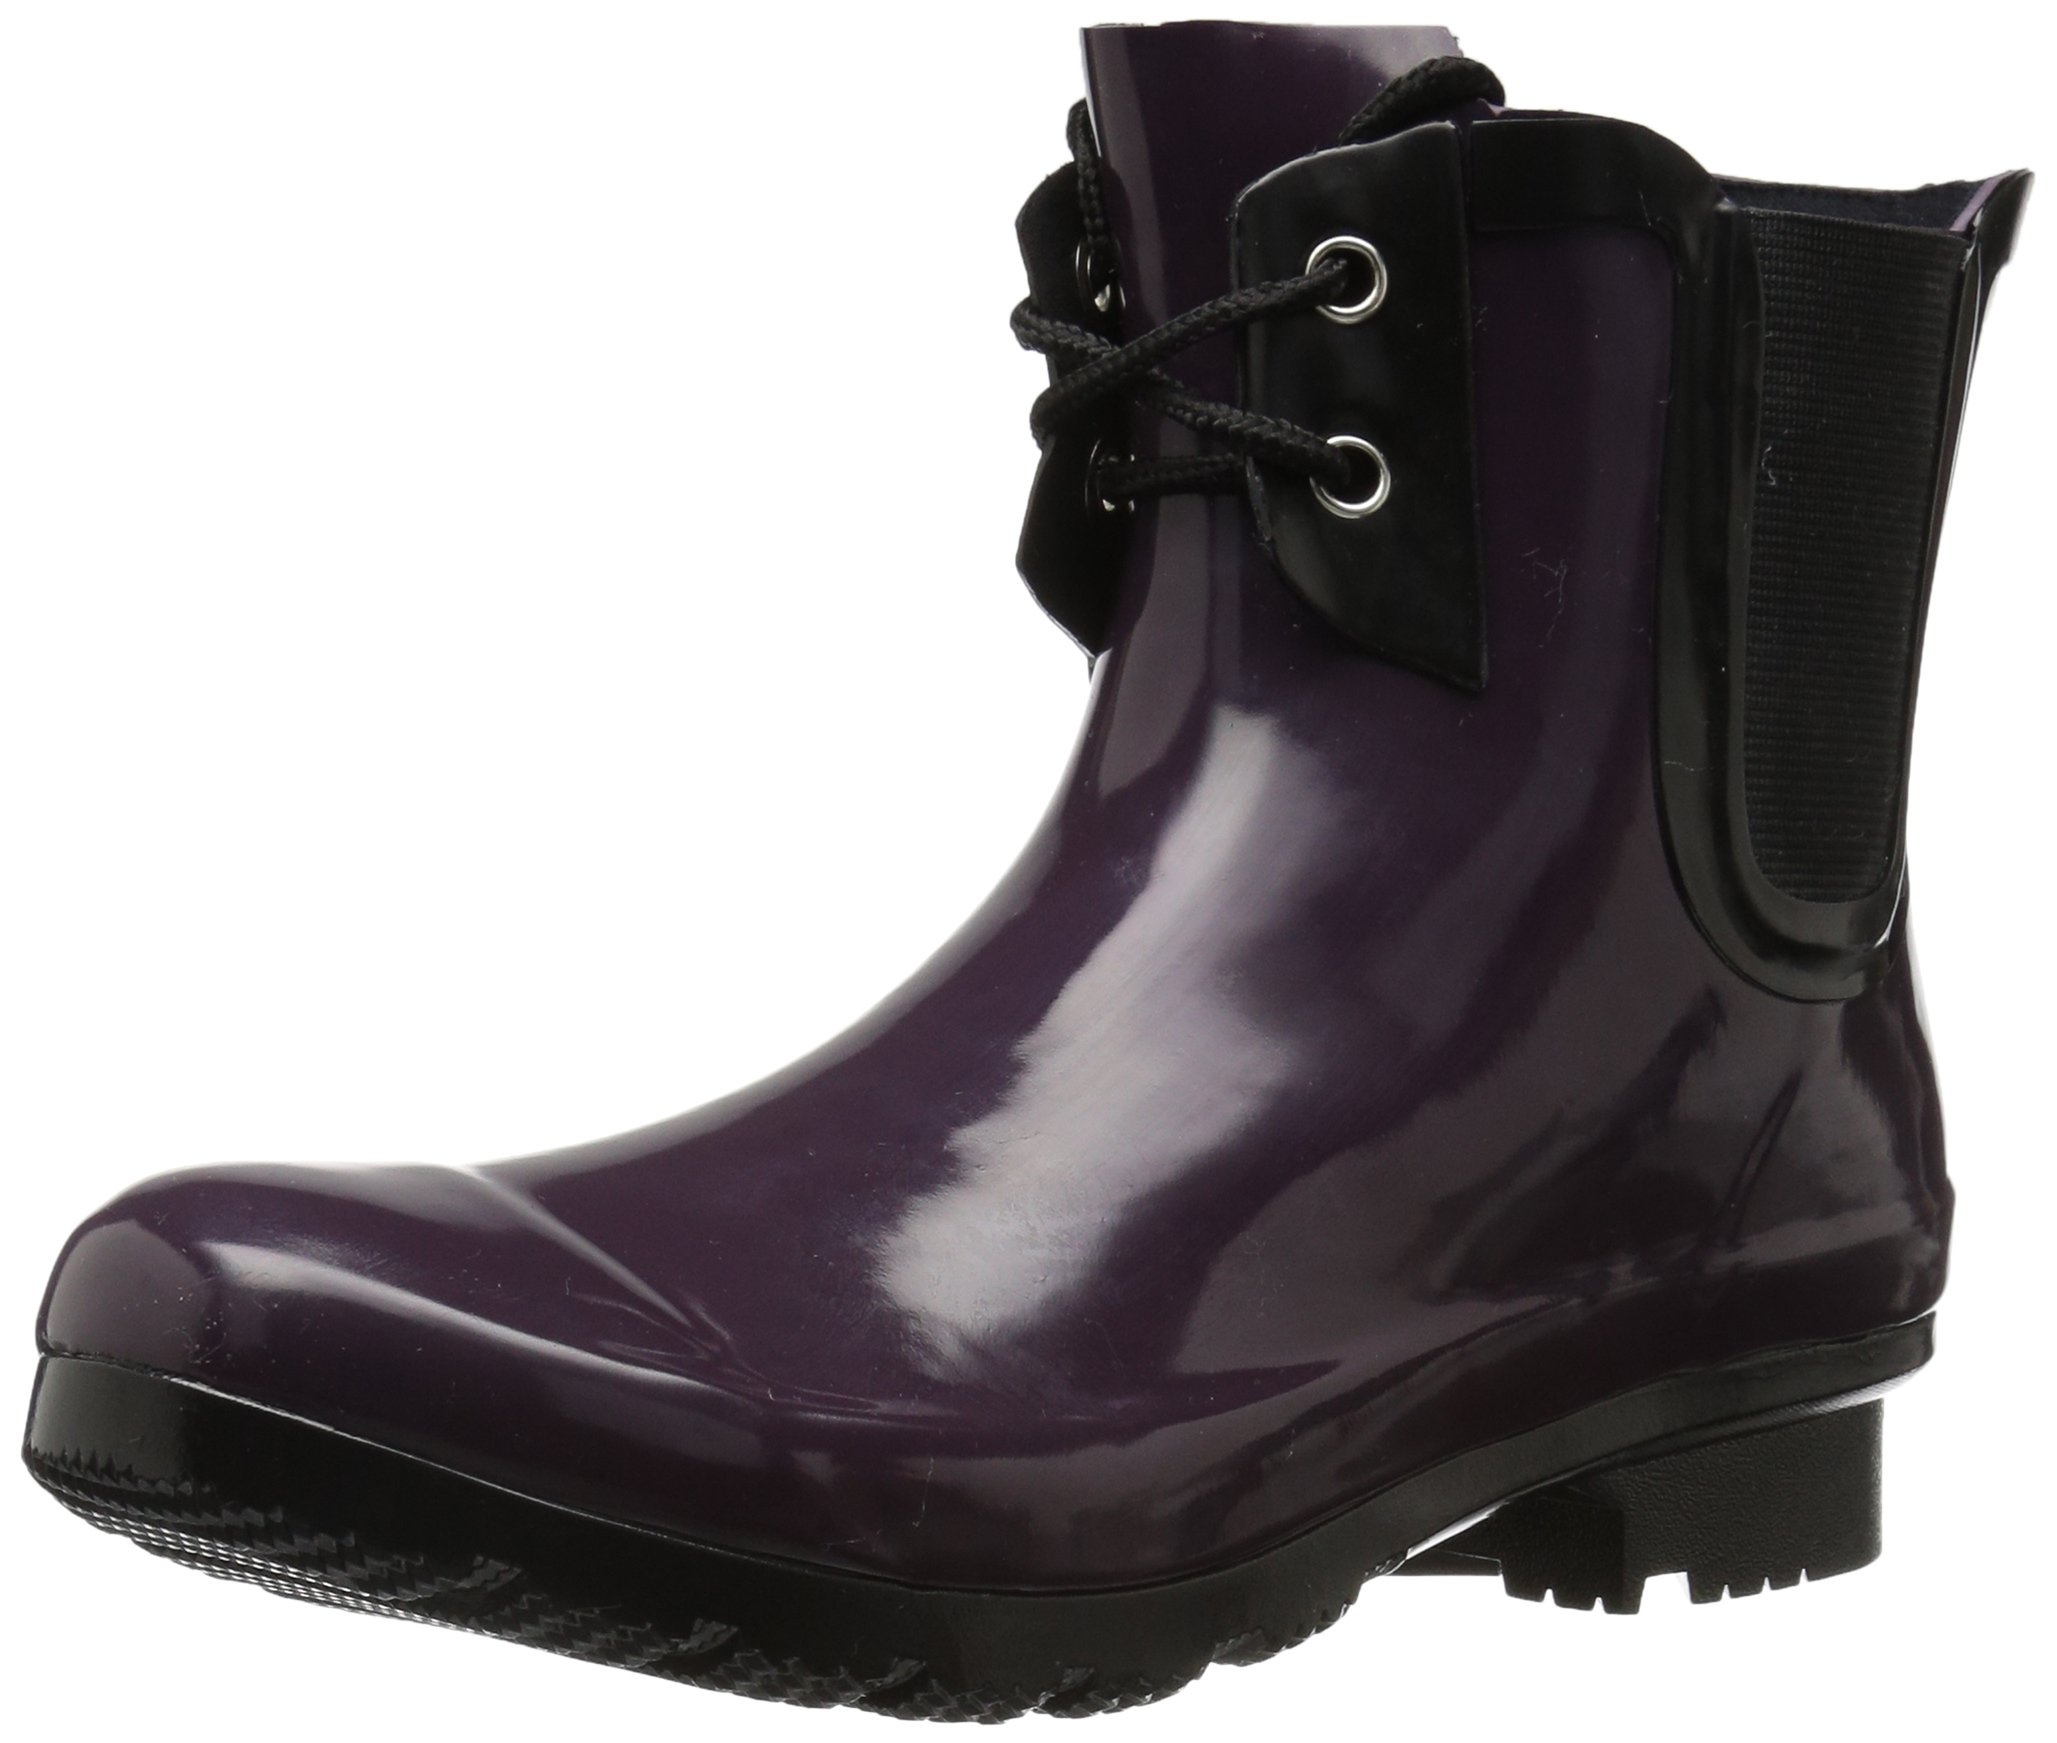 Roma Boots Women S Chelsea Lace Up Rain Boots Bworldly